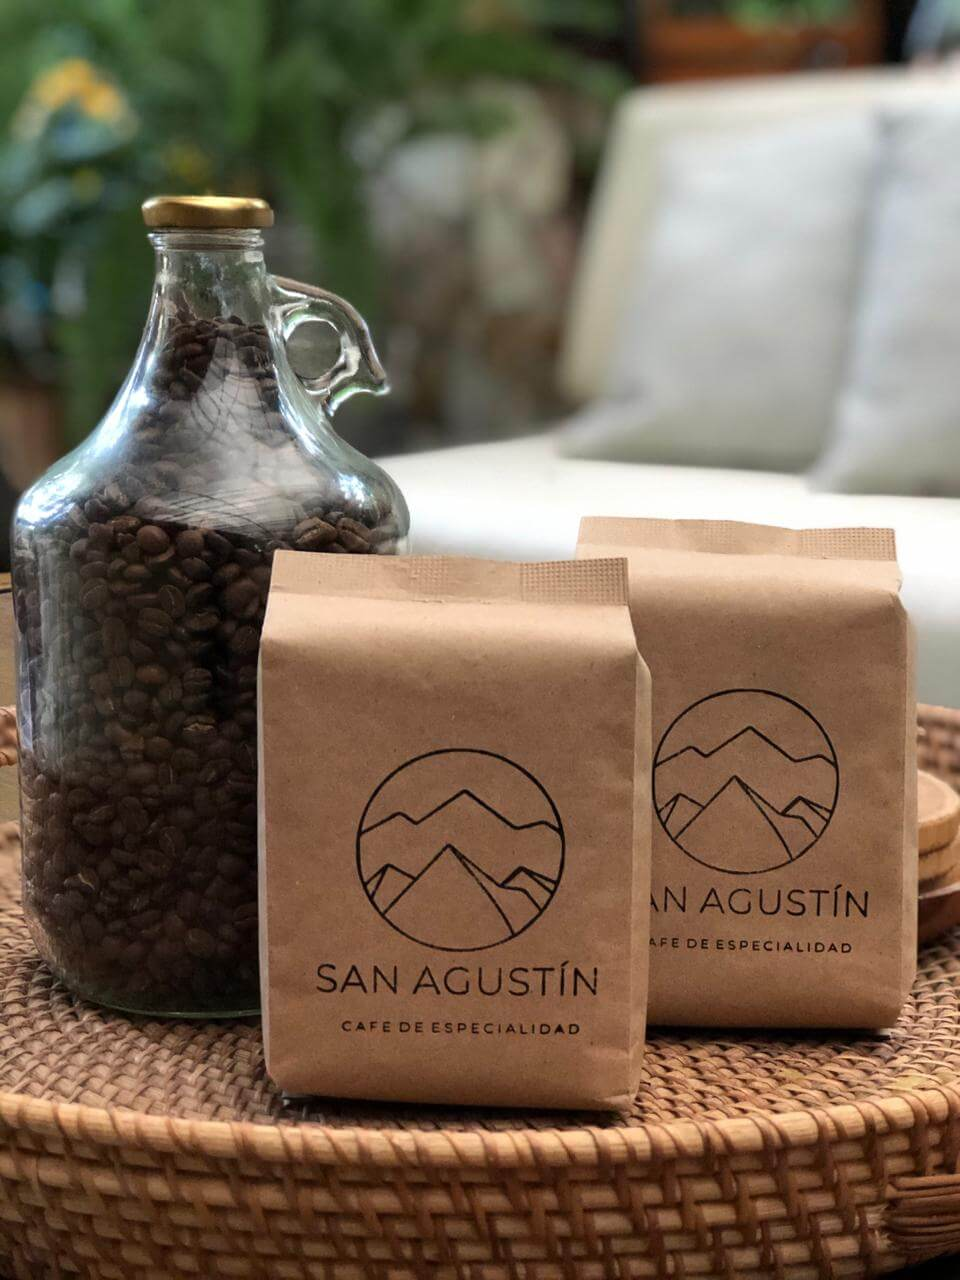 This is the exquisite blend that started it all. Named after the latest member of the Molina family, Agustín. We use some of the best varieties we grow. A cup of San Agustin has a complex body and a well balanced sweetness with bright acidity and citrus aromas.